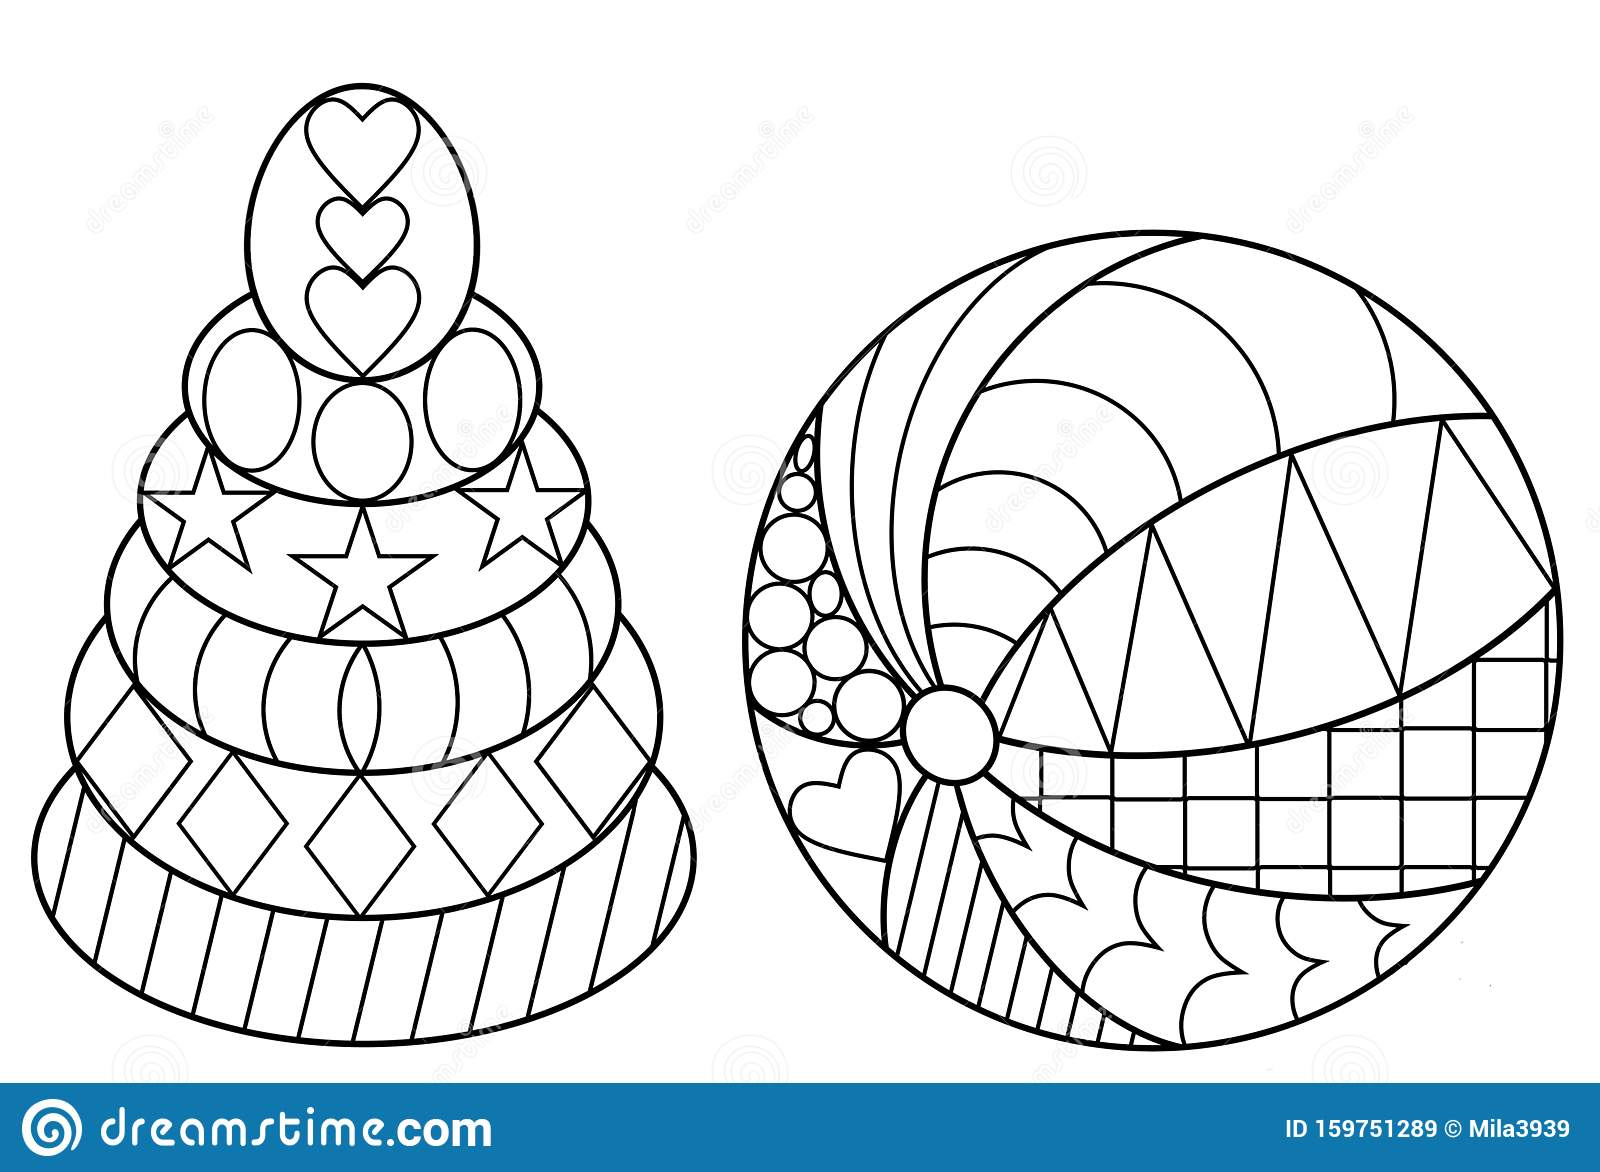 Set Of Two Coloring Pages For Children. Coloring Book With ...